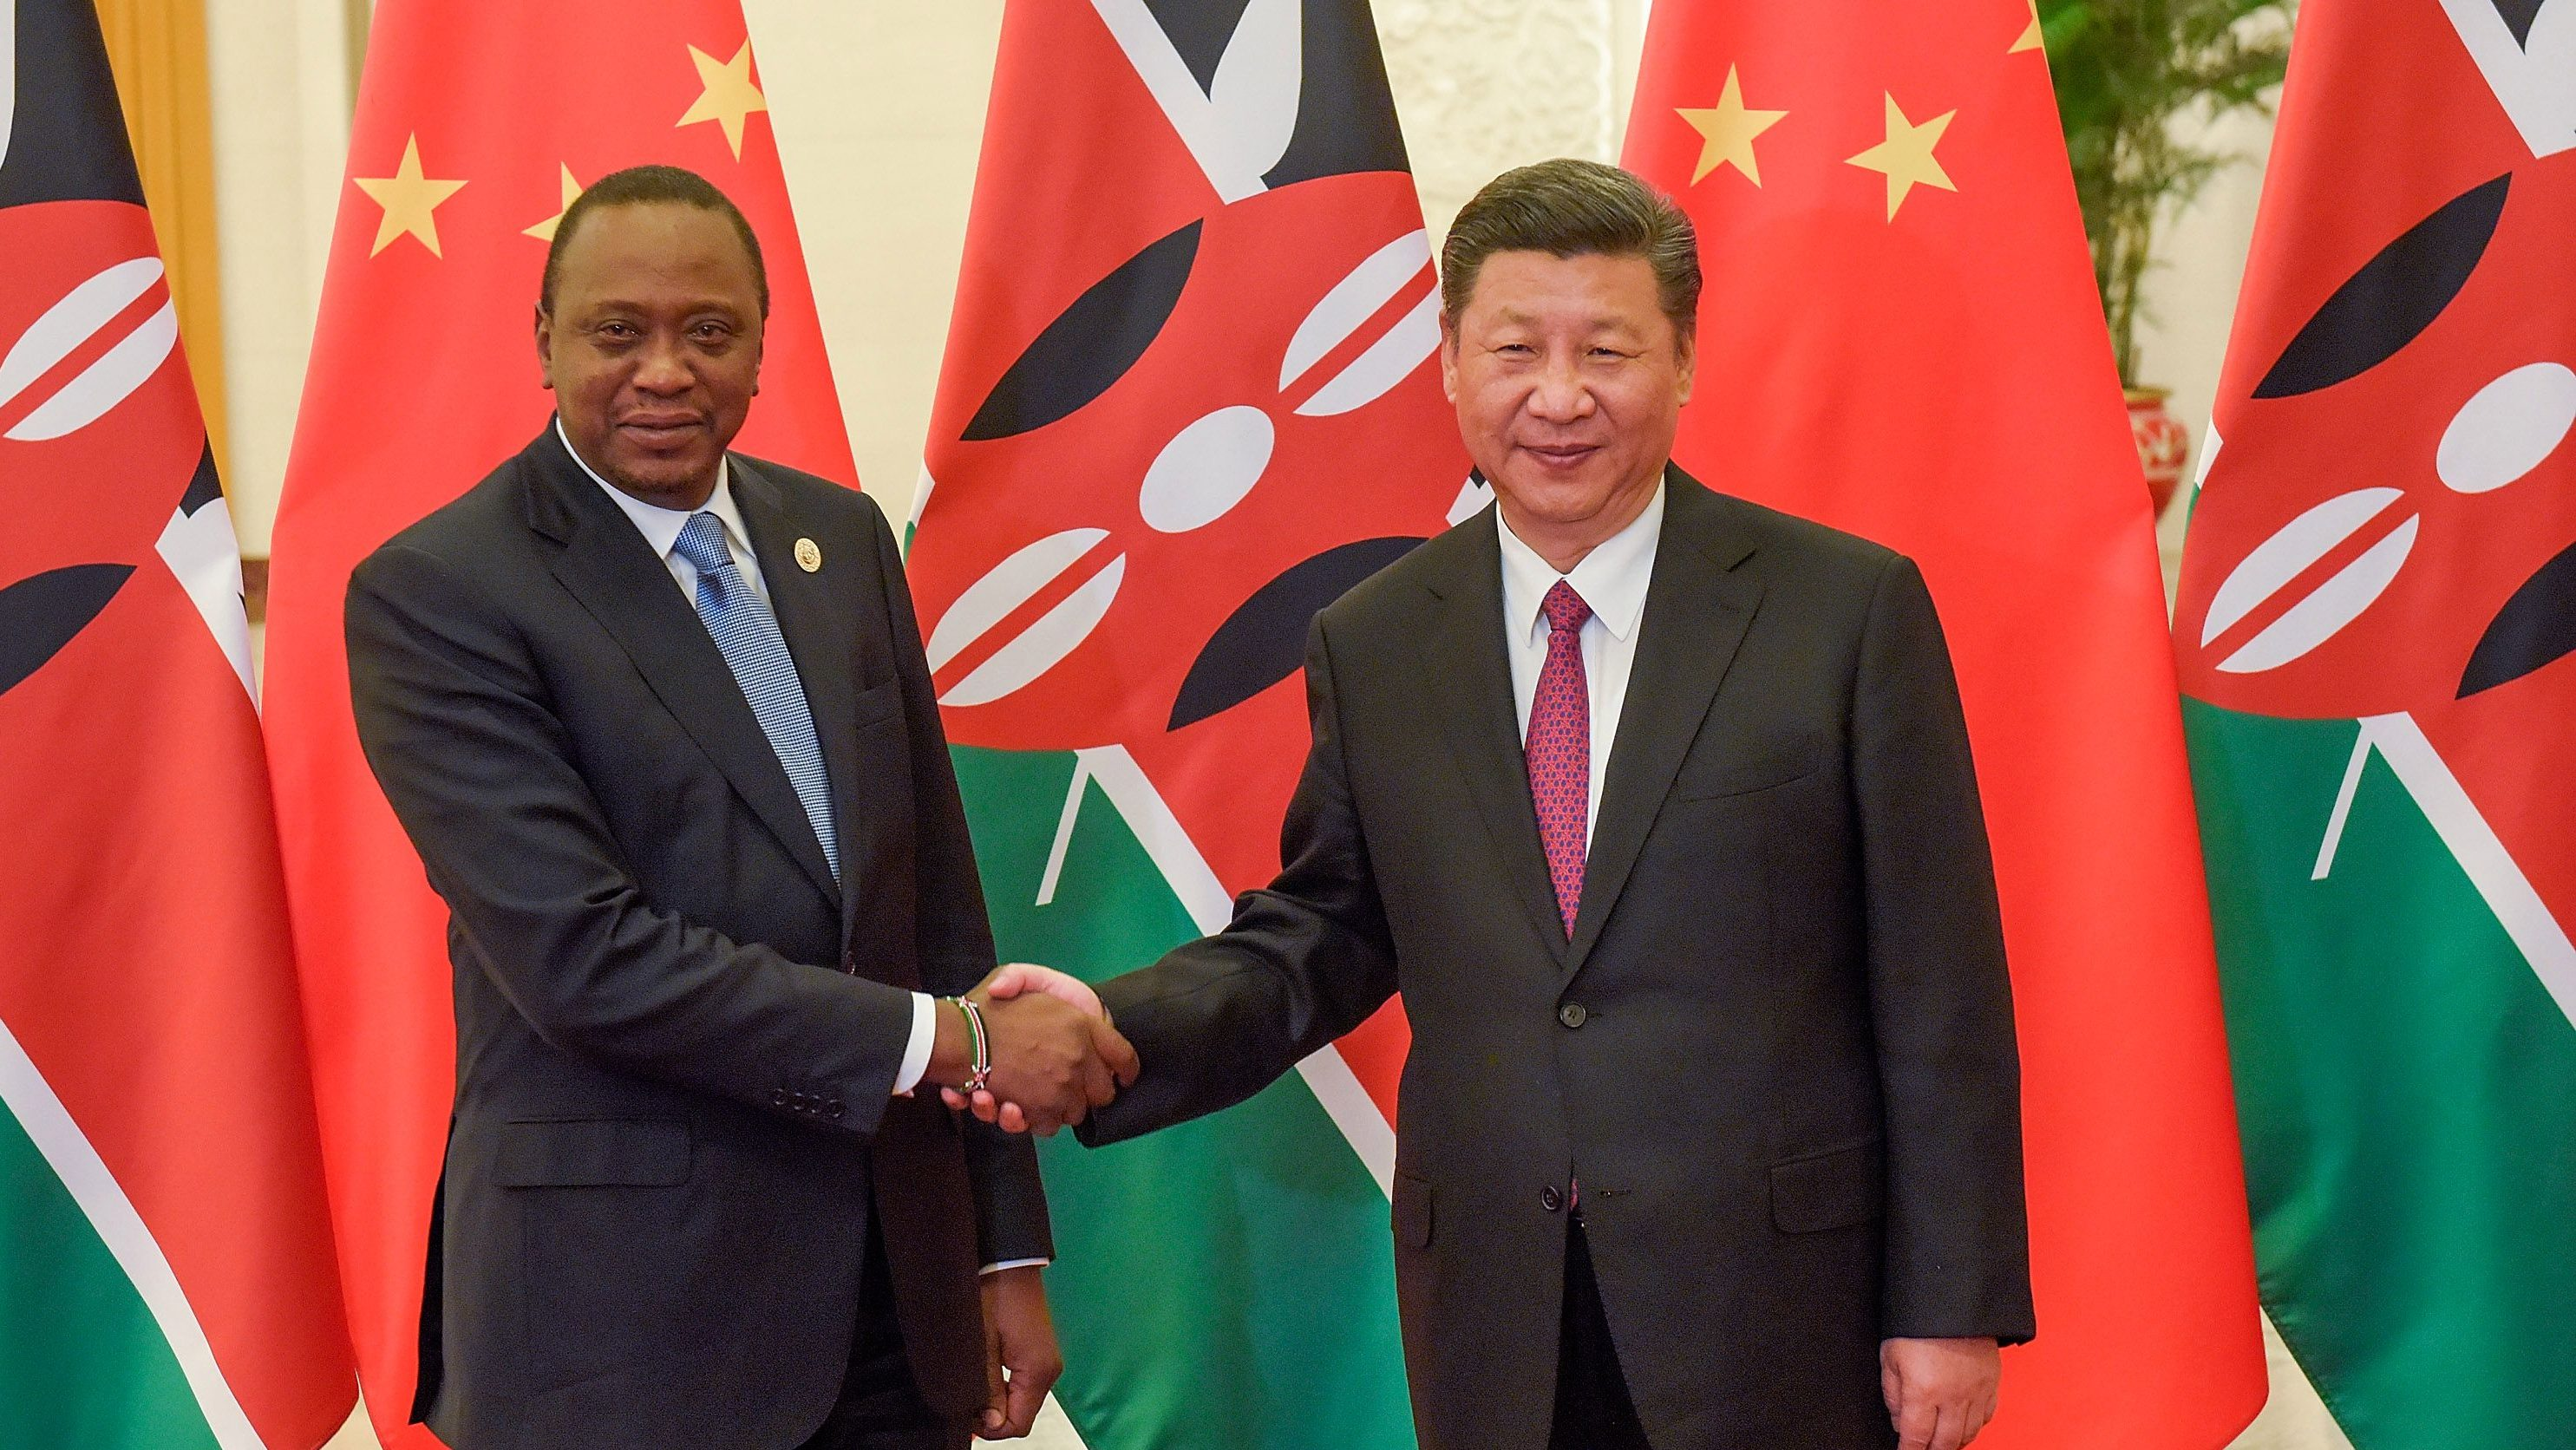 Chinese President Xi Jinping (R) and Kenyan President Uhuru Kenyatta (L) shake hands as they pose for the media prior to their bilateral meeting during the Belt and Road Forum for International Cooperation at the Great Hall of the People in Beijing, China, 15 May 2017.